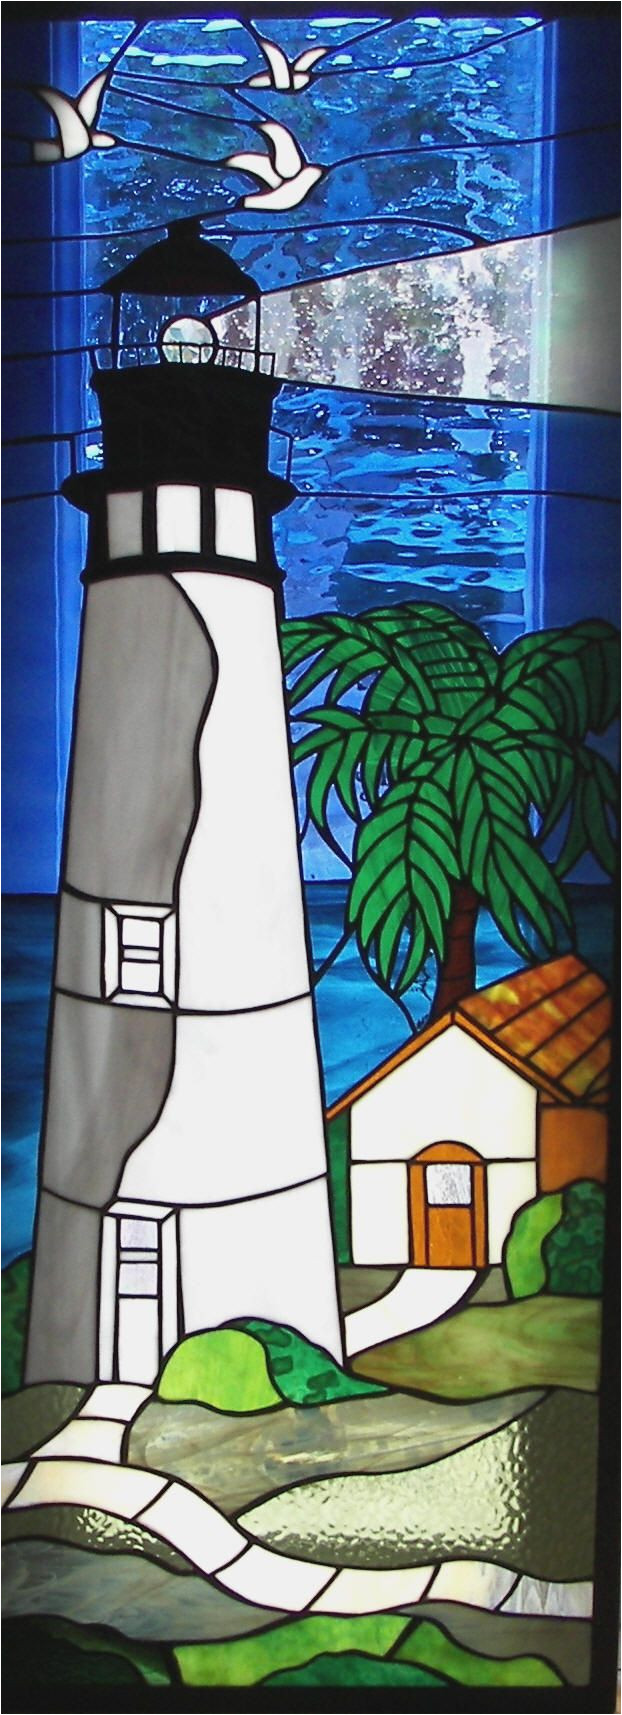 Stained Glass Supplies In Denver 161 Best Vitrales Images On Pinterest Stained Glass Stained Glass